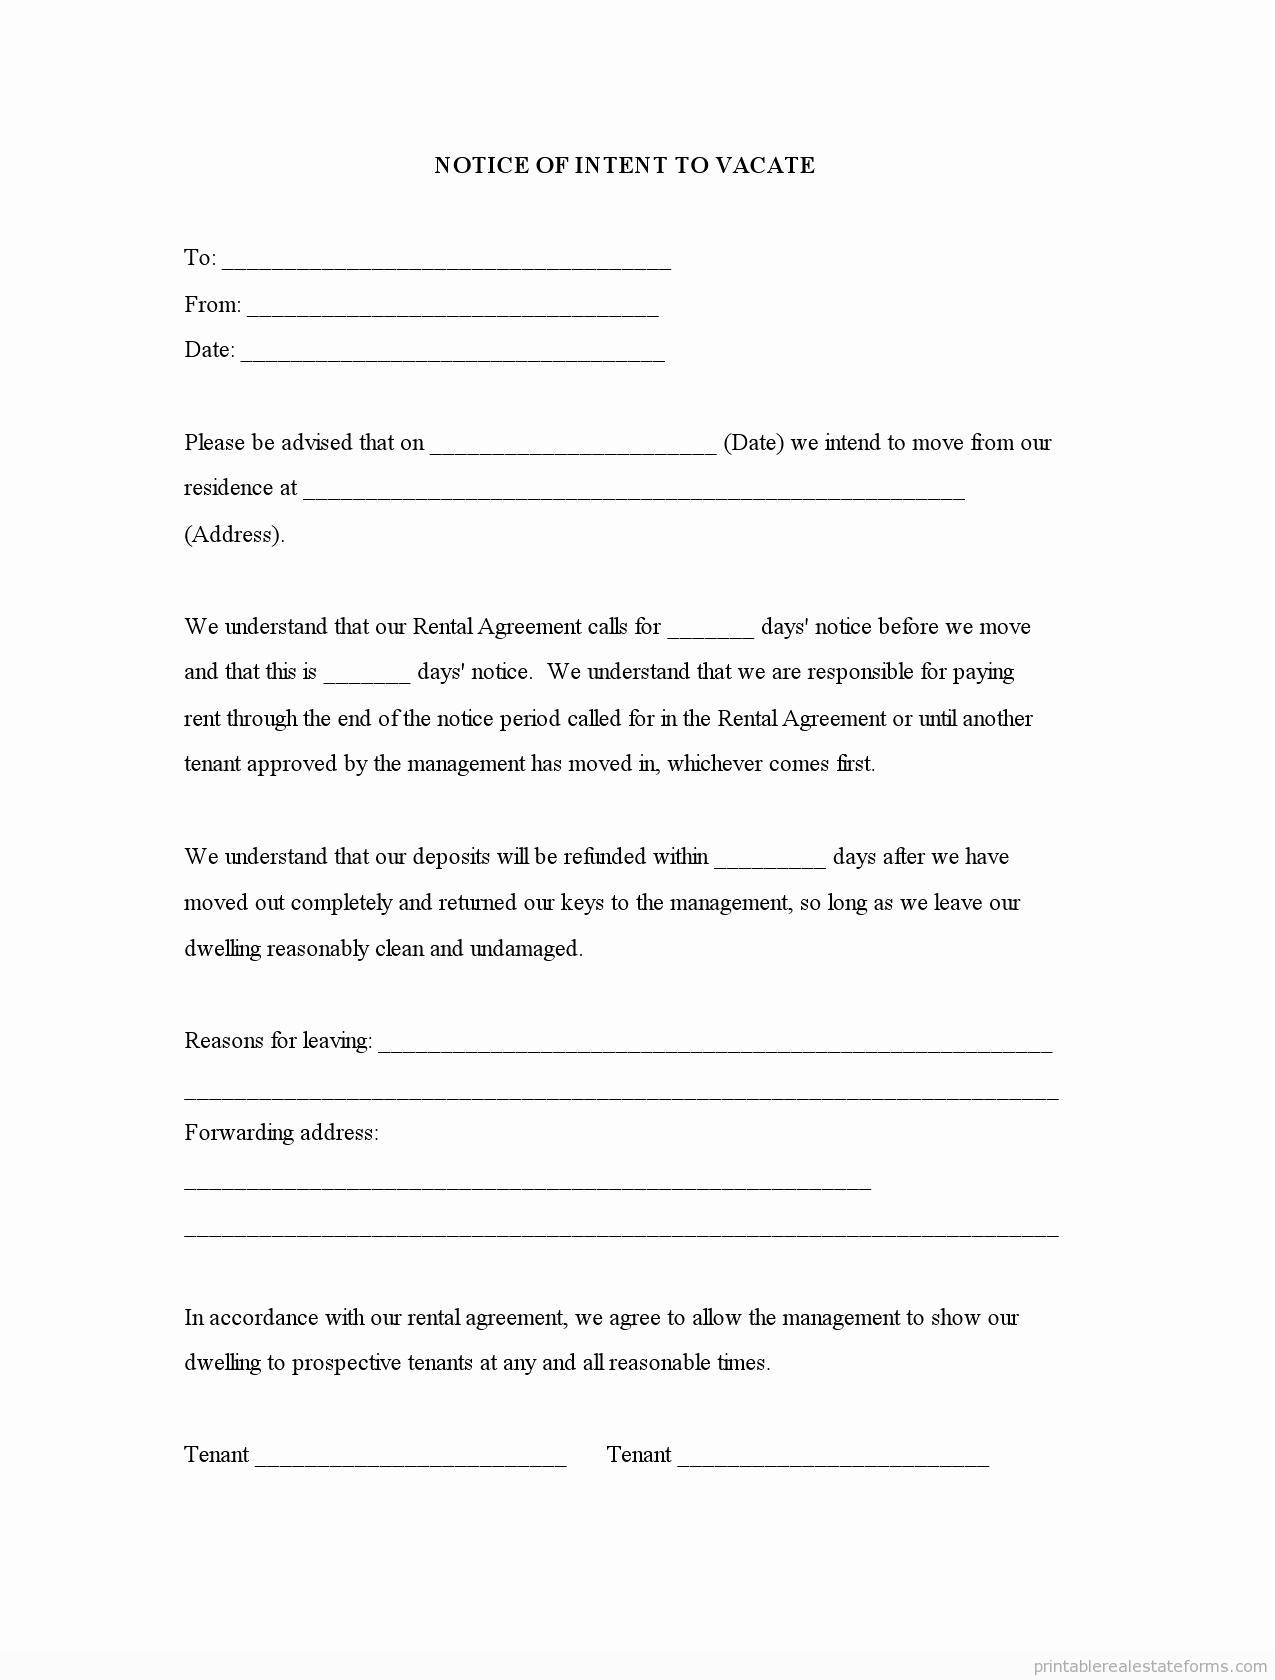 Notice to Vacate Template Unique Free Printable Notice Of Intent to Vacate form Sample